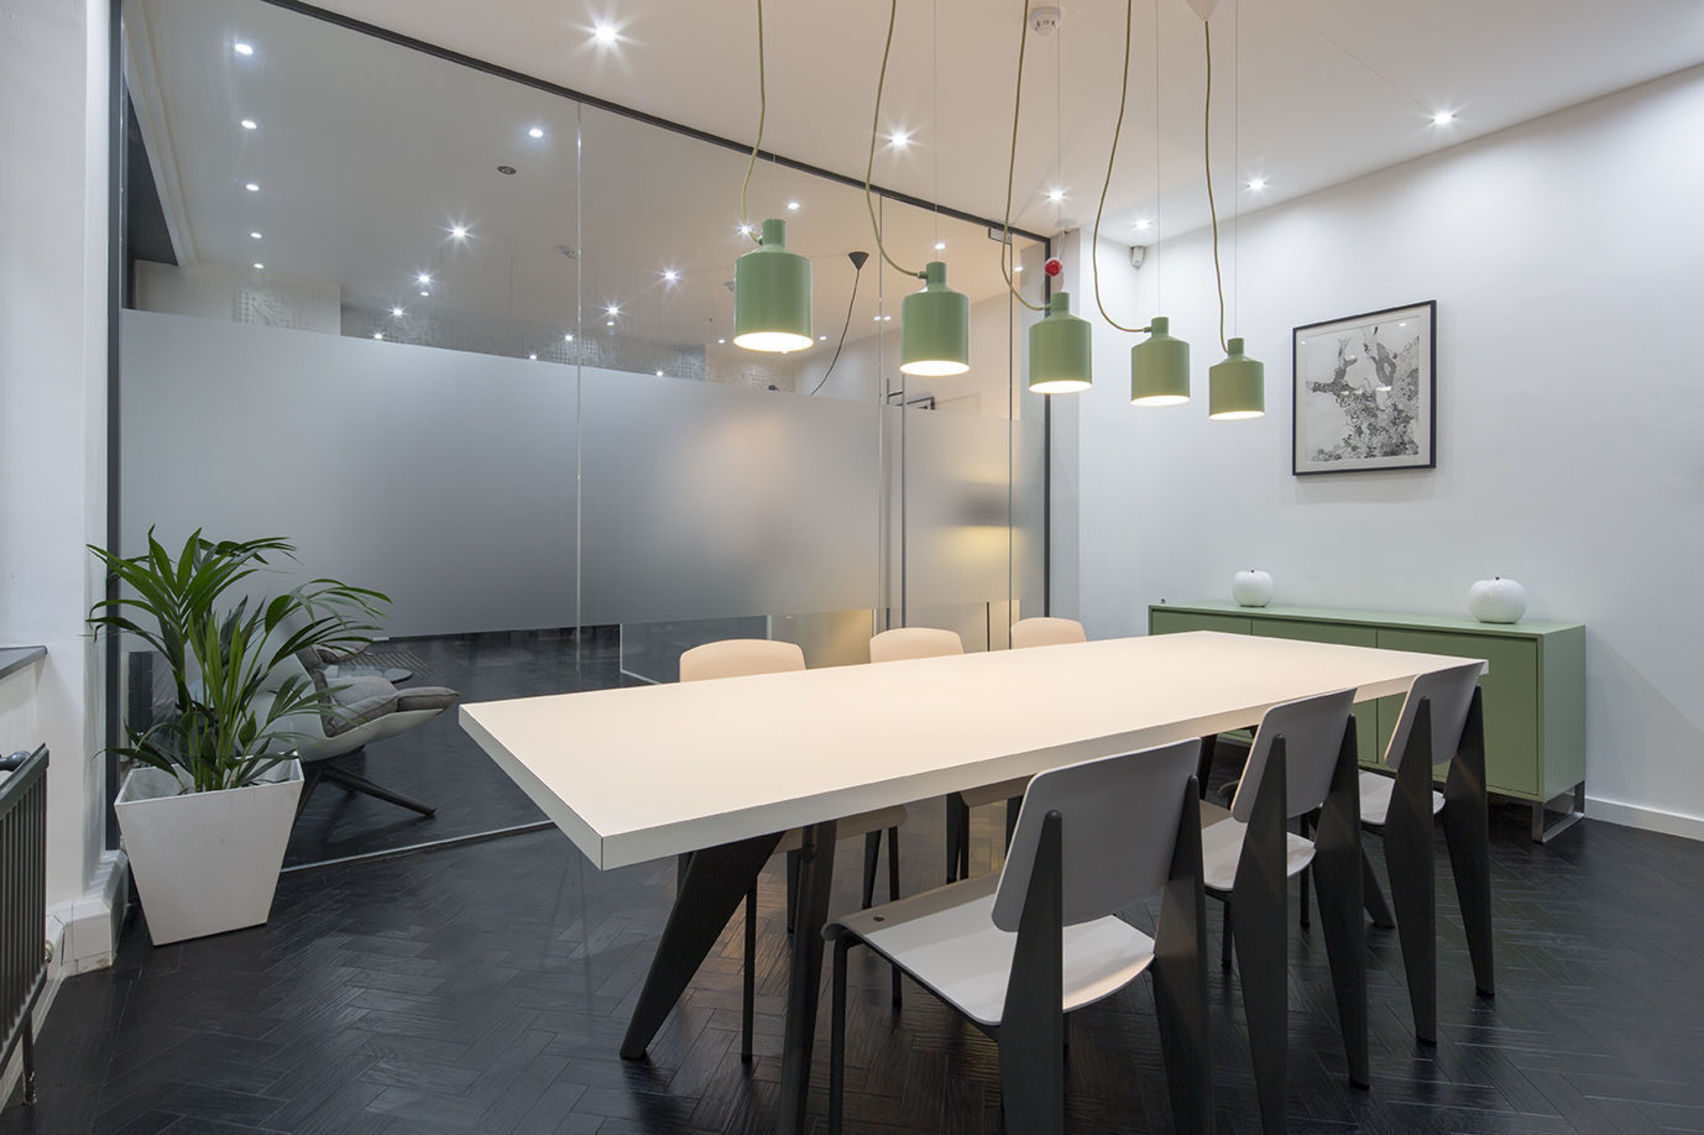 A white meeting room with a glass wall and green furnishings